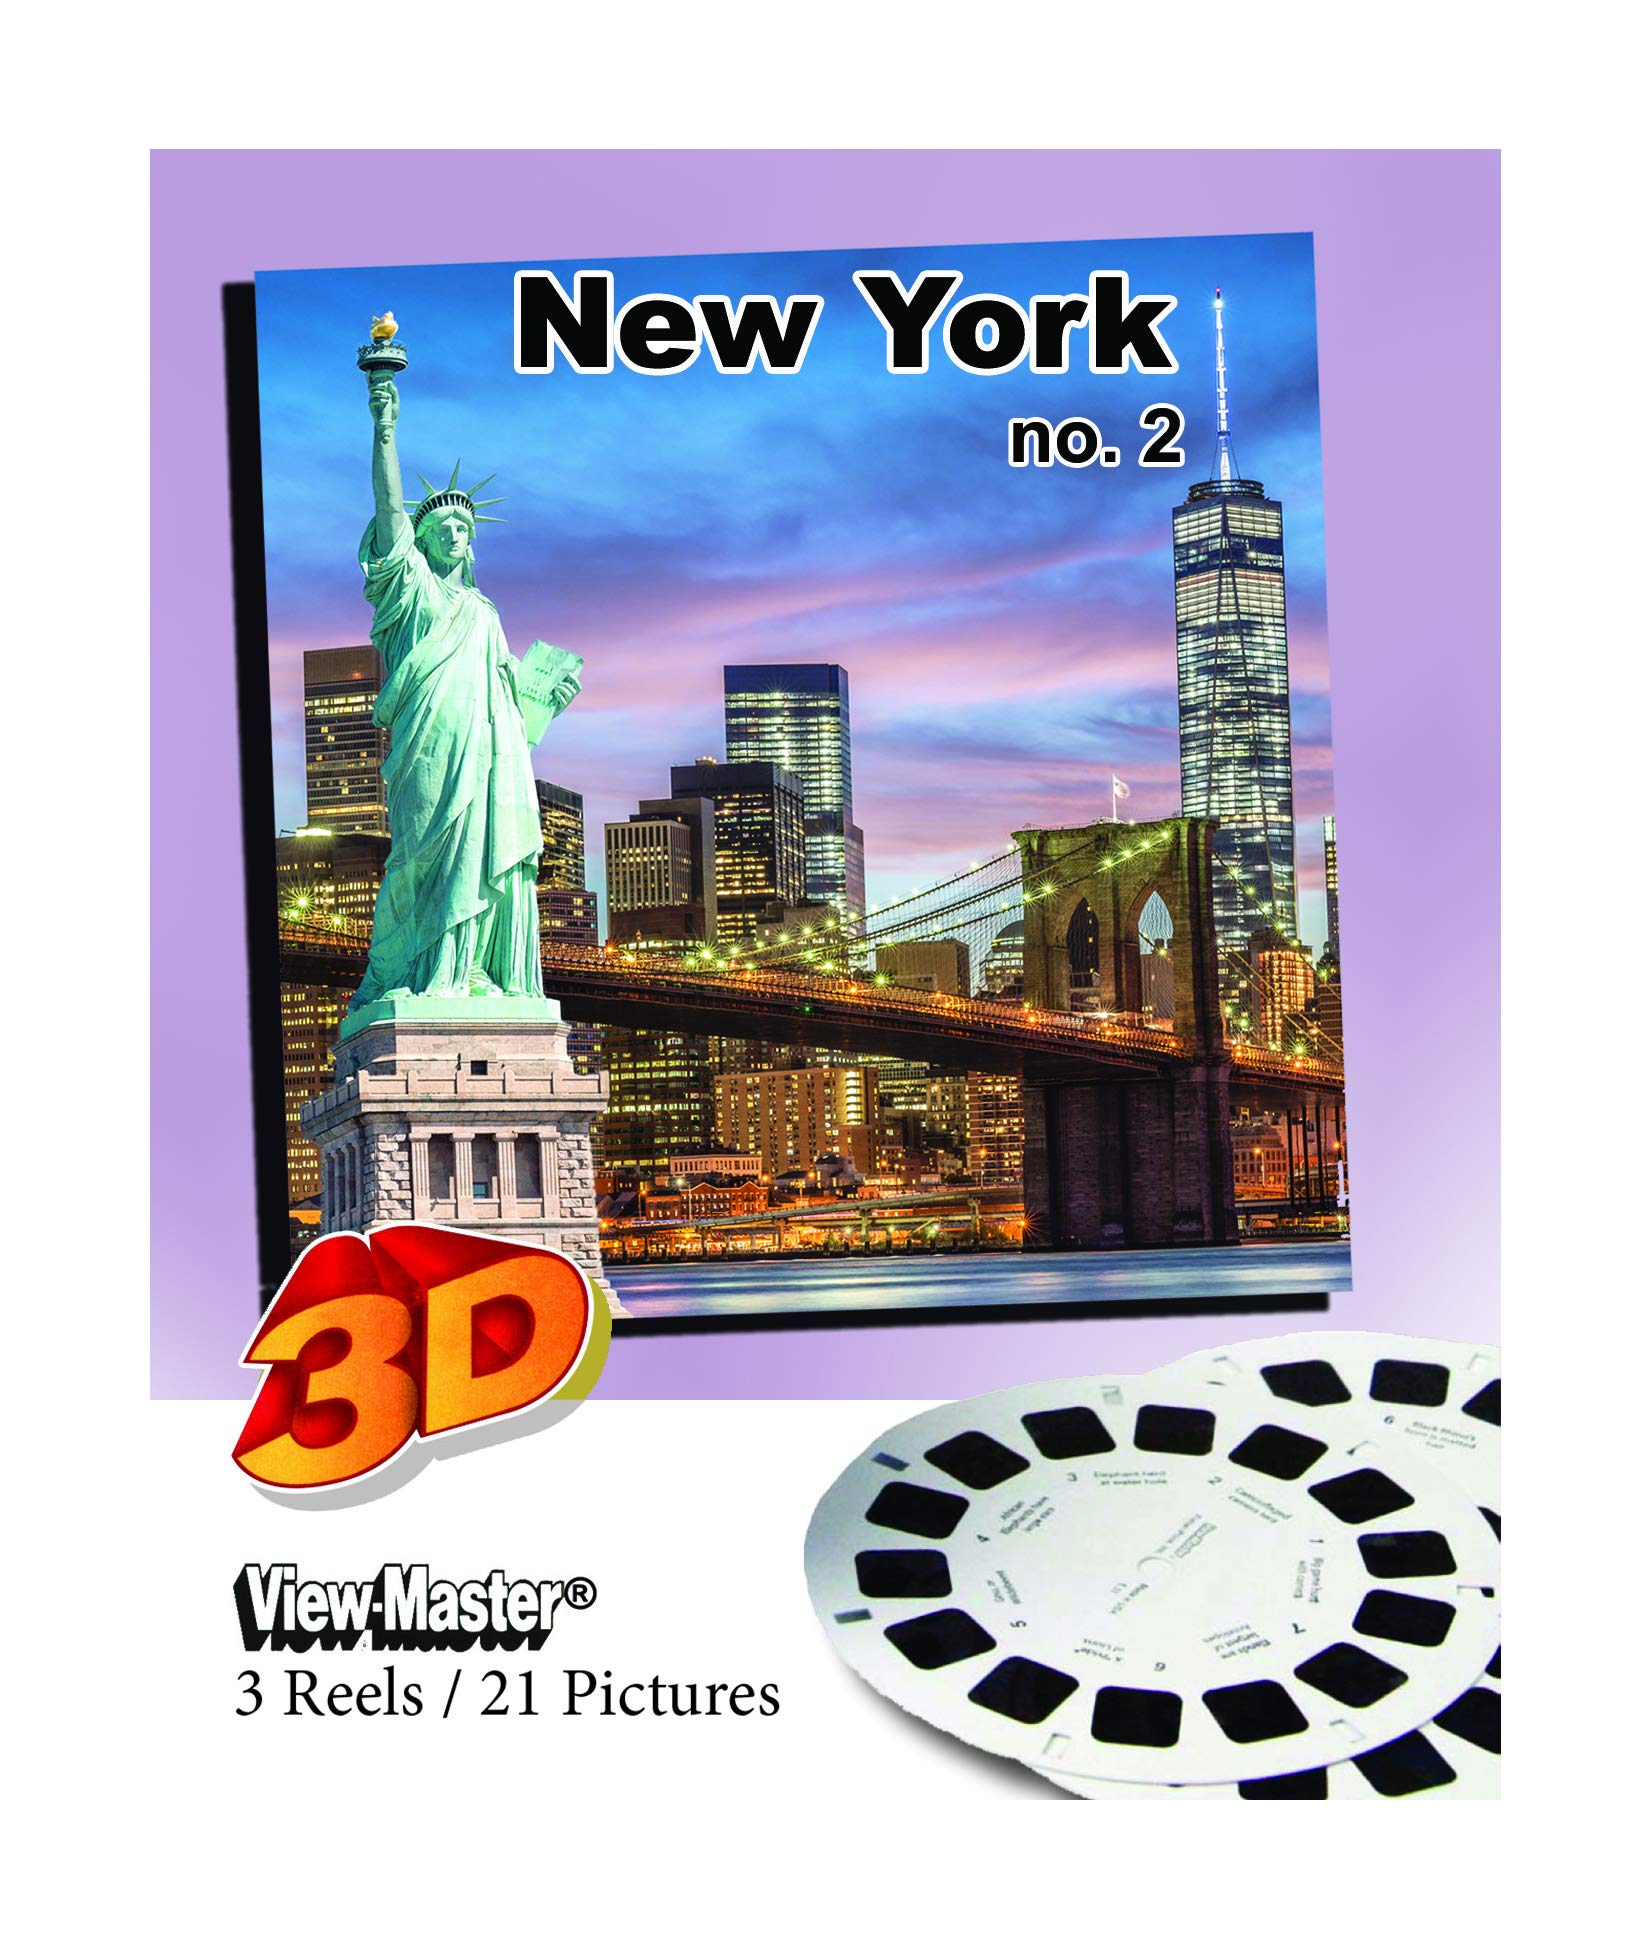 ViewMaster Classic New York City 2 - 3 reels 2013 City Scenes by 3Dstereo ViewMaster